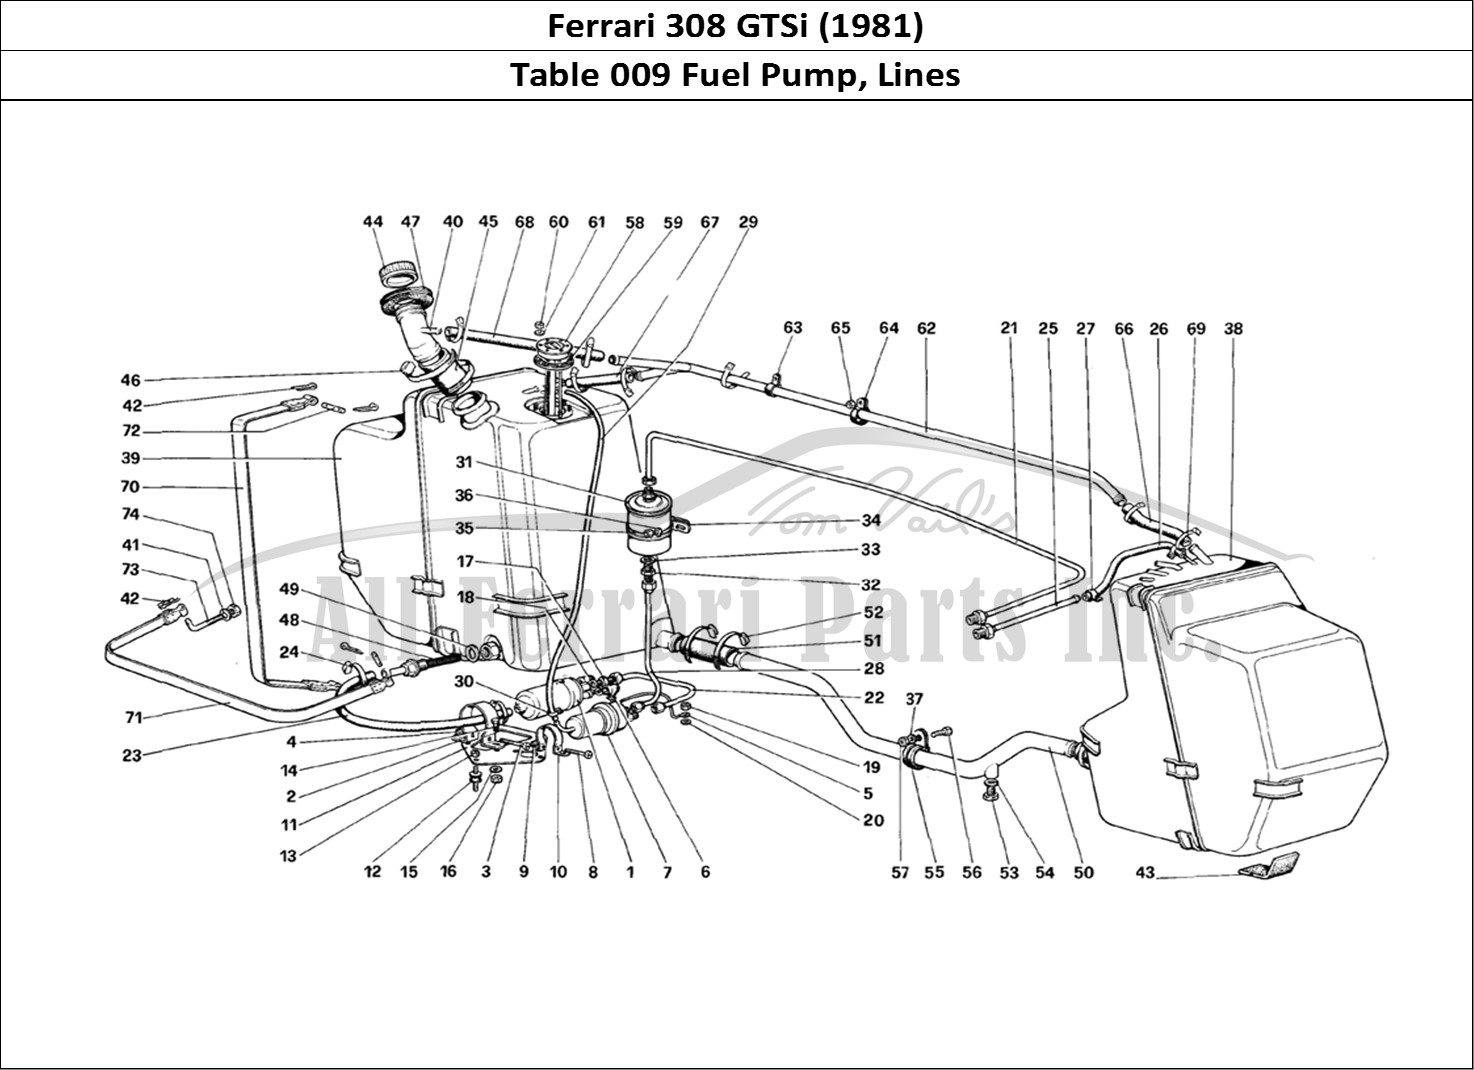 Buy Original Ferrari 308 Gtsi 009 Fuel Pump Lines